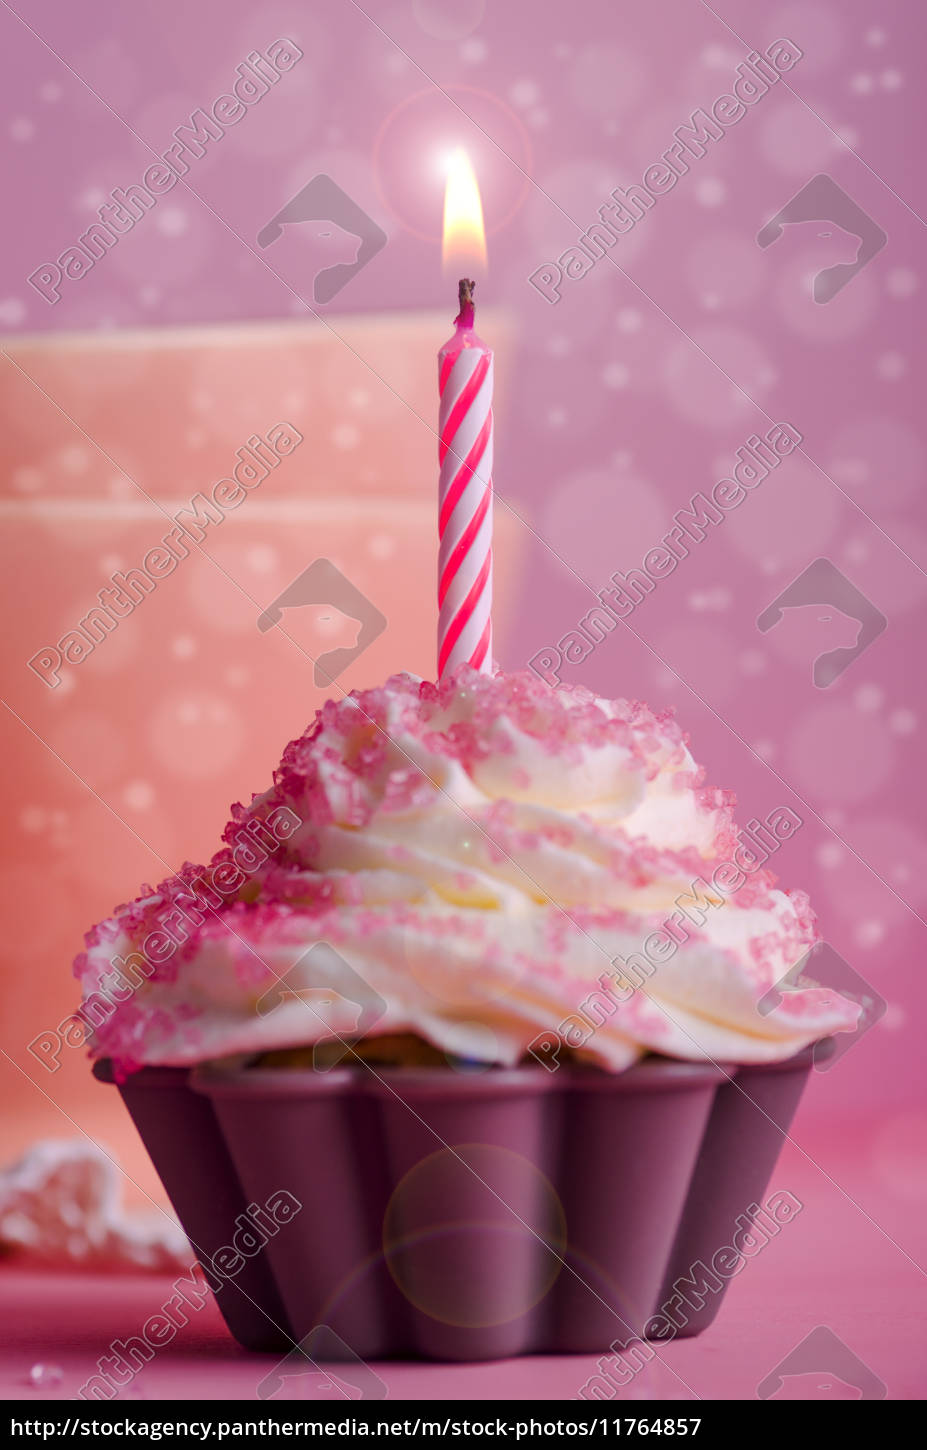 cupcake geburtstag muffin stockfoto 11764857 bildagentur panthermedia. Black Bedroom Furniture Sets. Home Design Ideas